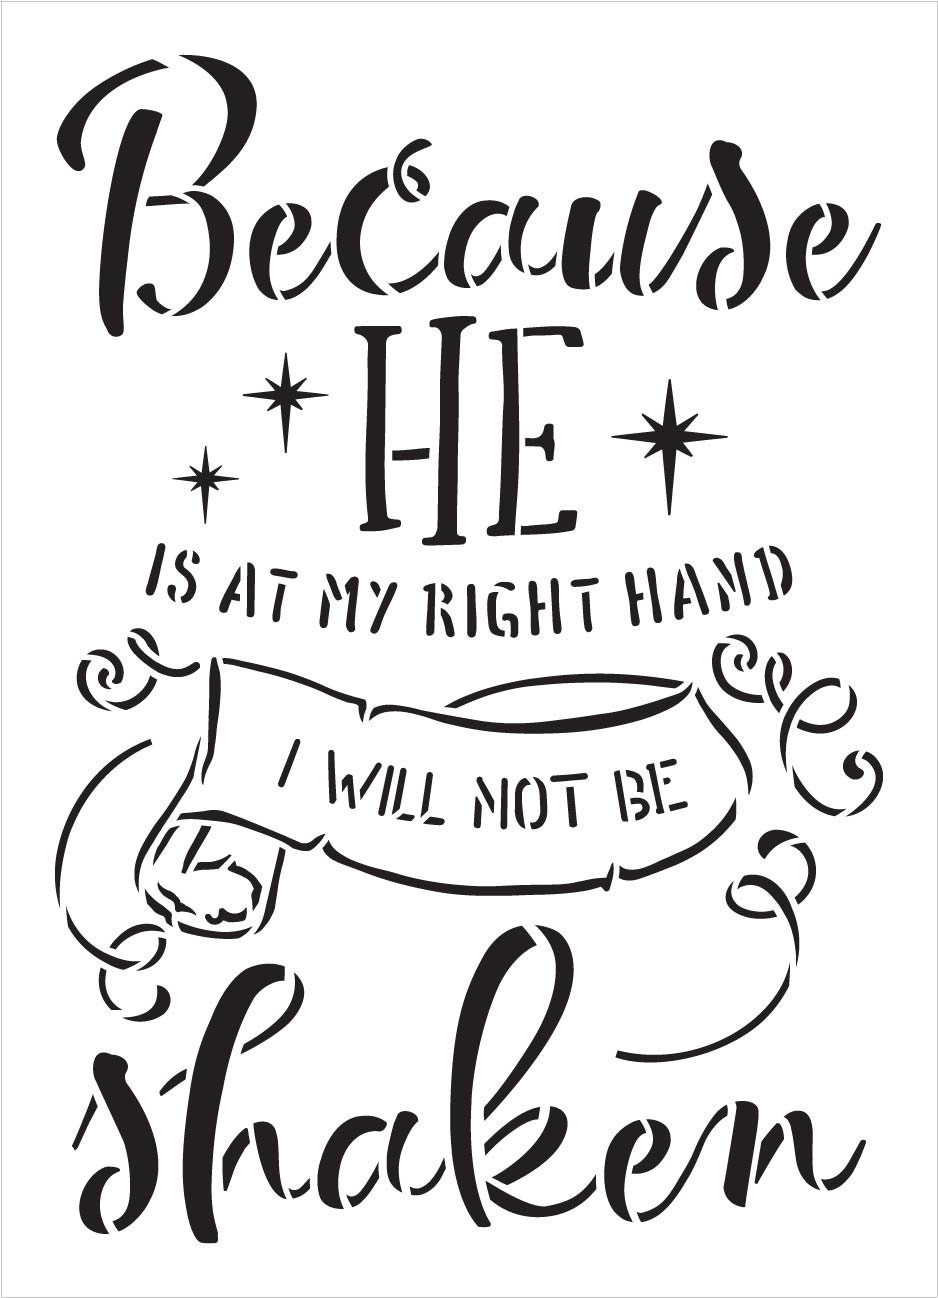 I Will Not Be Shaken Stencil by StudioR12 | DIY Farmhouse Faith Home Decor | Craft & Paint Inspirational Wood Signs | Select Size